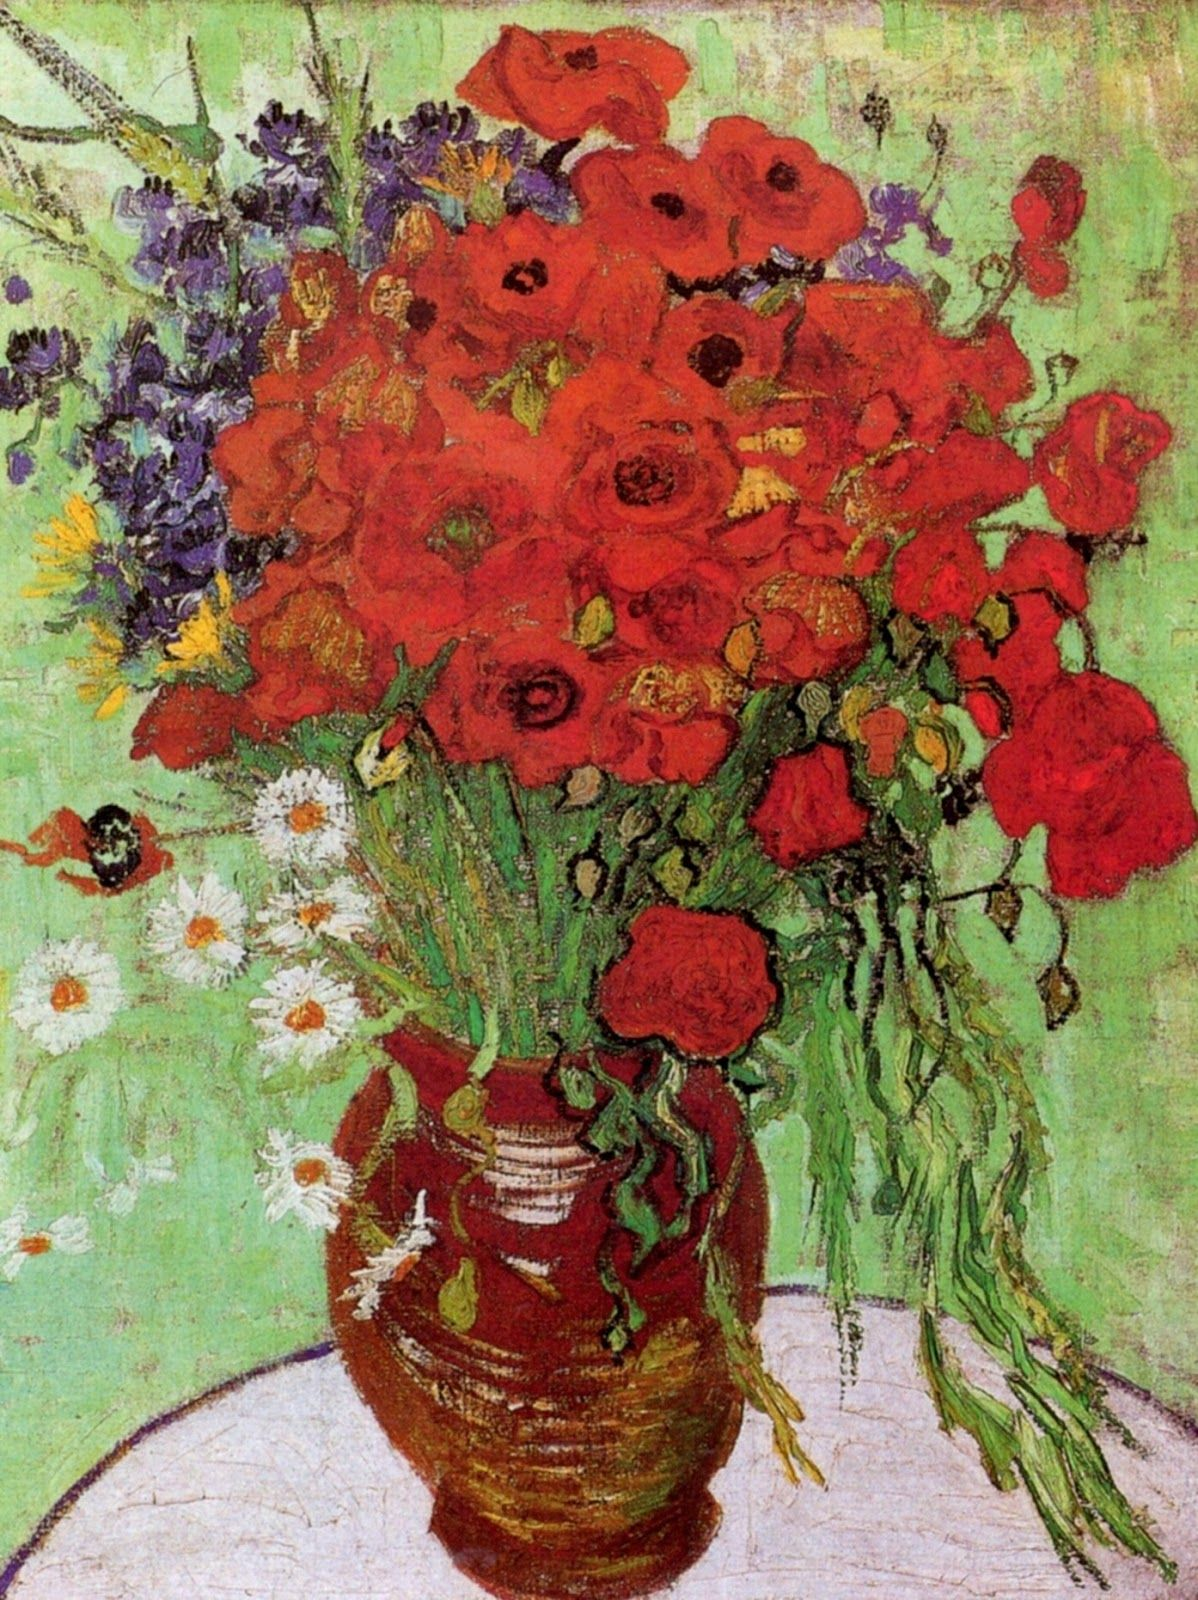 Pin By Barbara Kling On Art In All Forms Pinterest Van Gogh